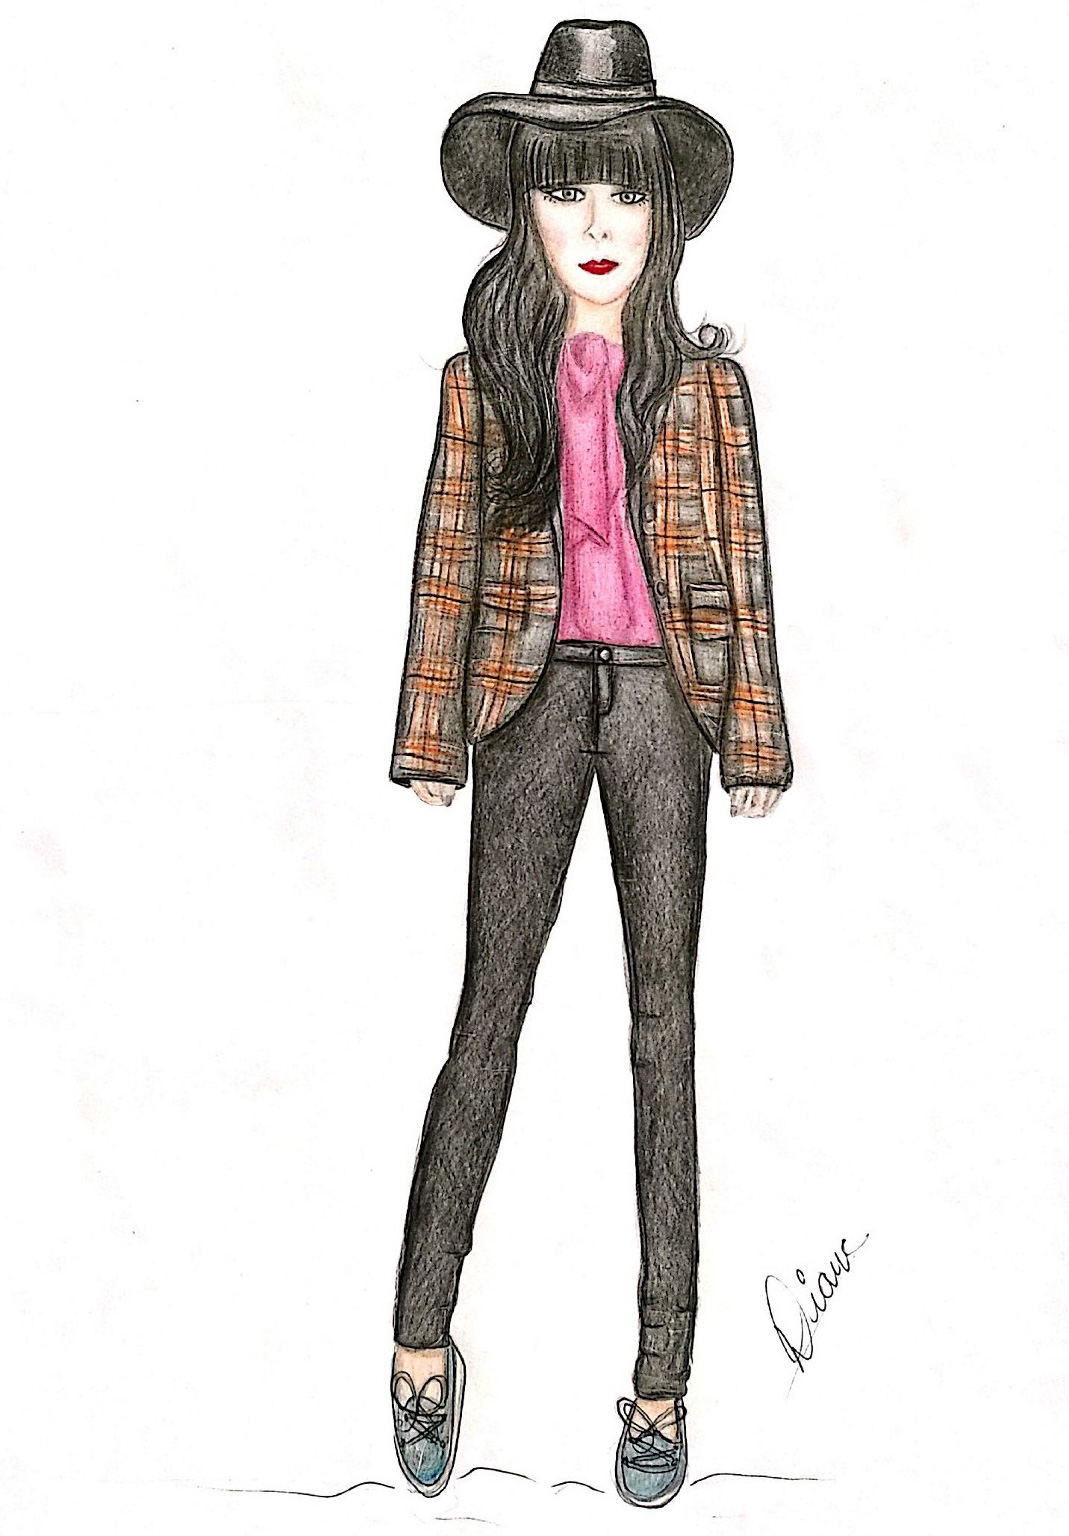 rachel-marie-elainspira-fashion-illustration